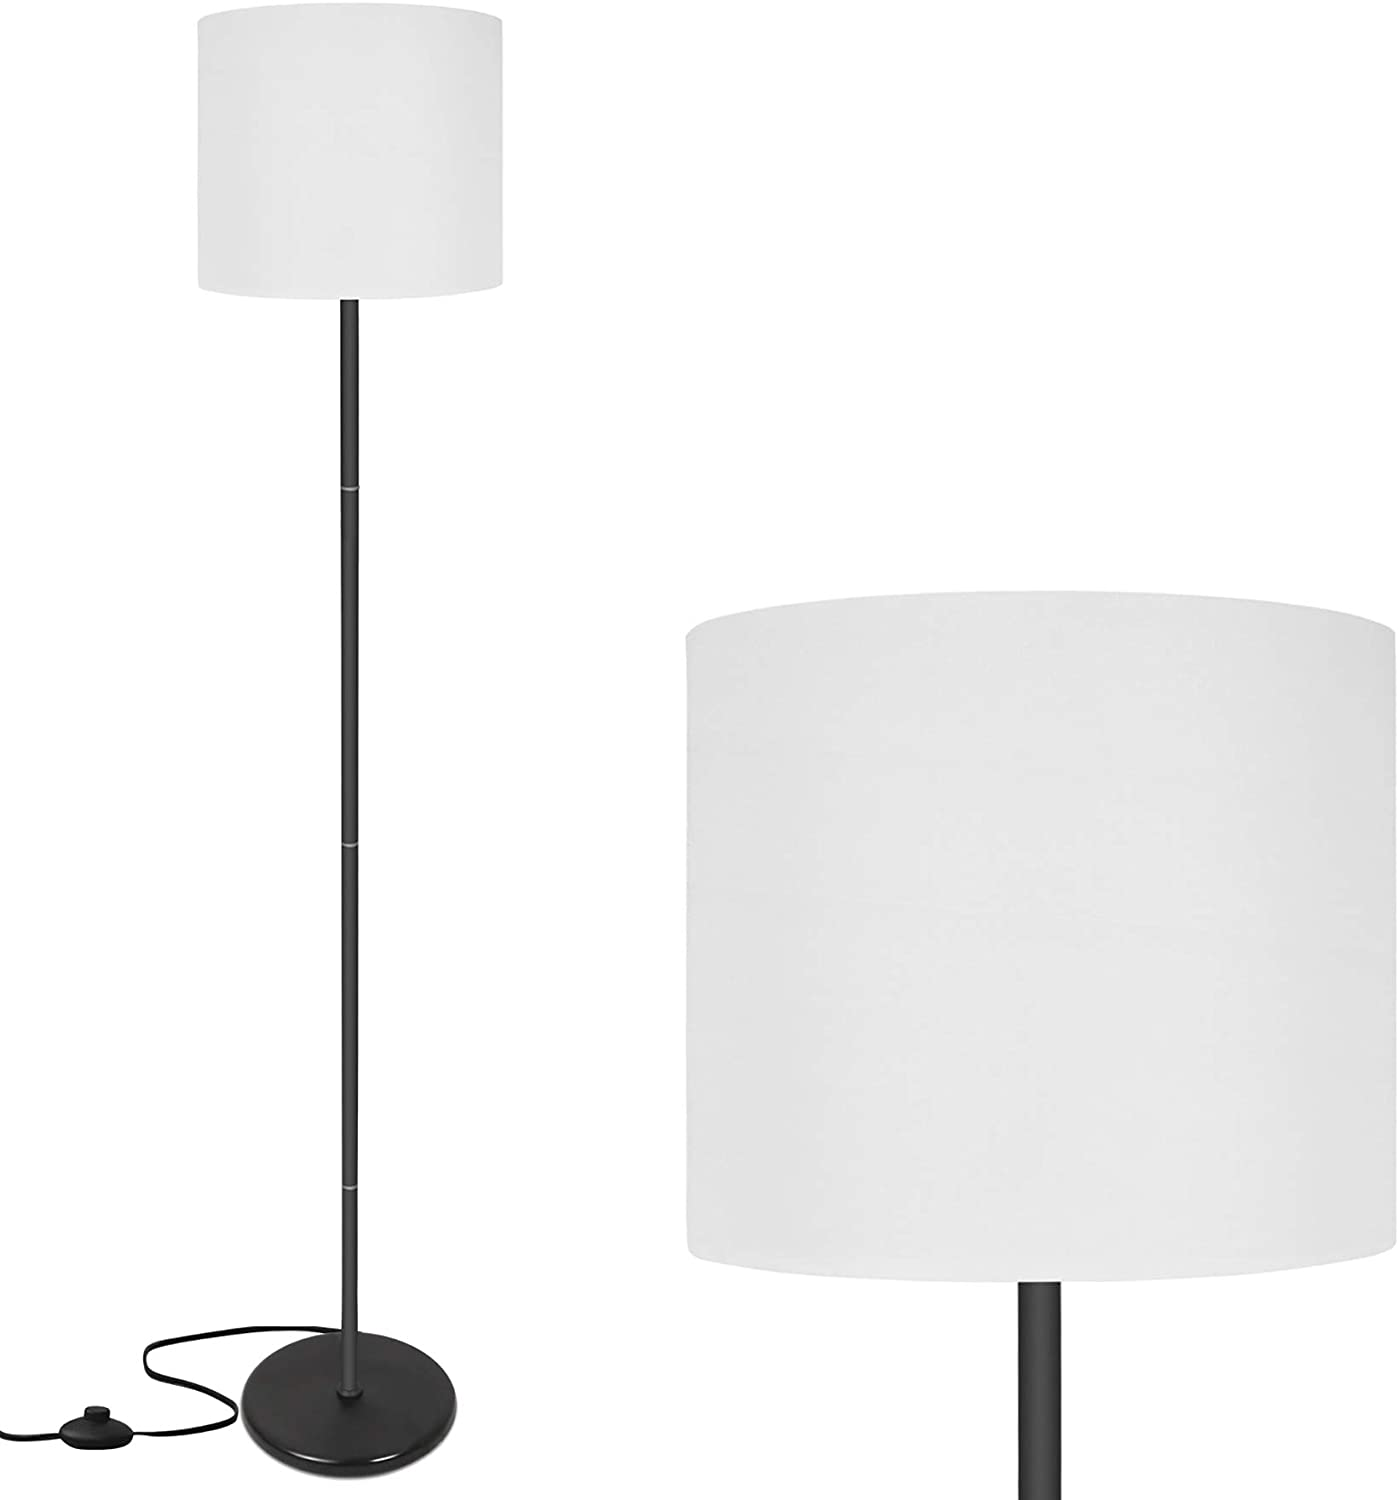 Amazon.com: LED Floor Lamp Simple Design, Modern Floor Lamp With Shade, Floor Lamps For Living Room Bedroom Office Dining Room Kitchen, White Standing Floor Lamp (Without Bulb): Home Improvement